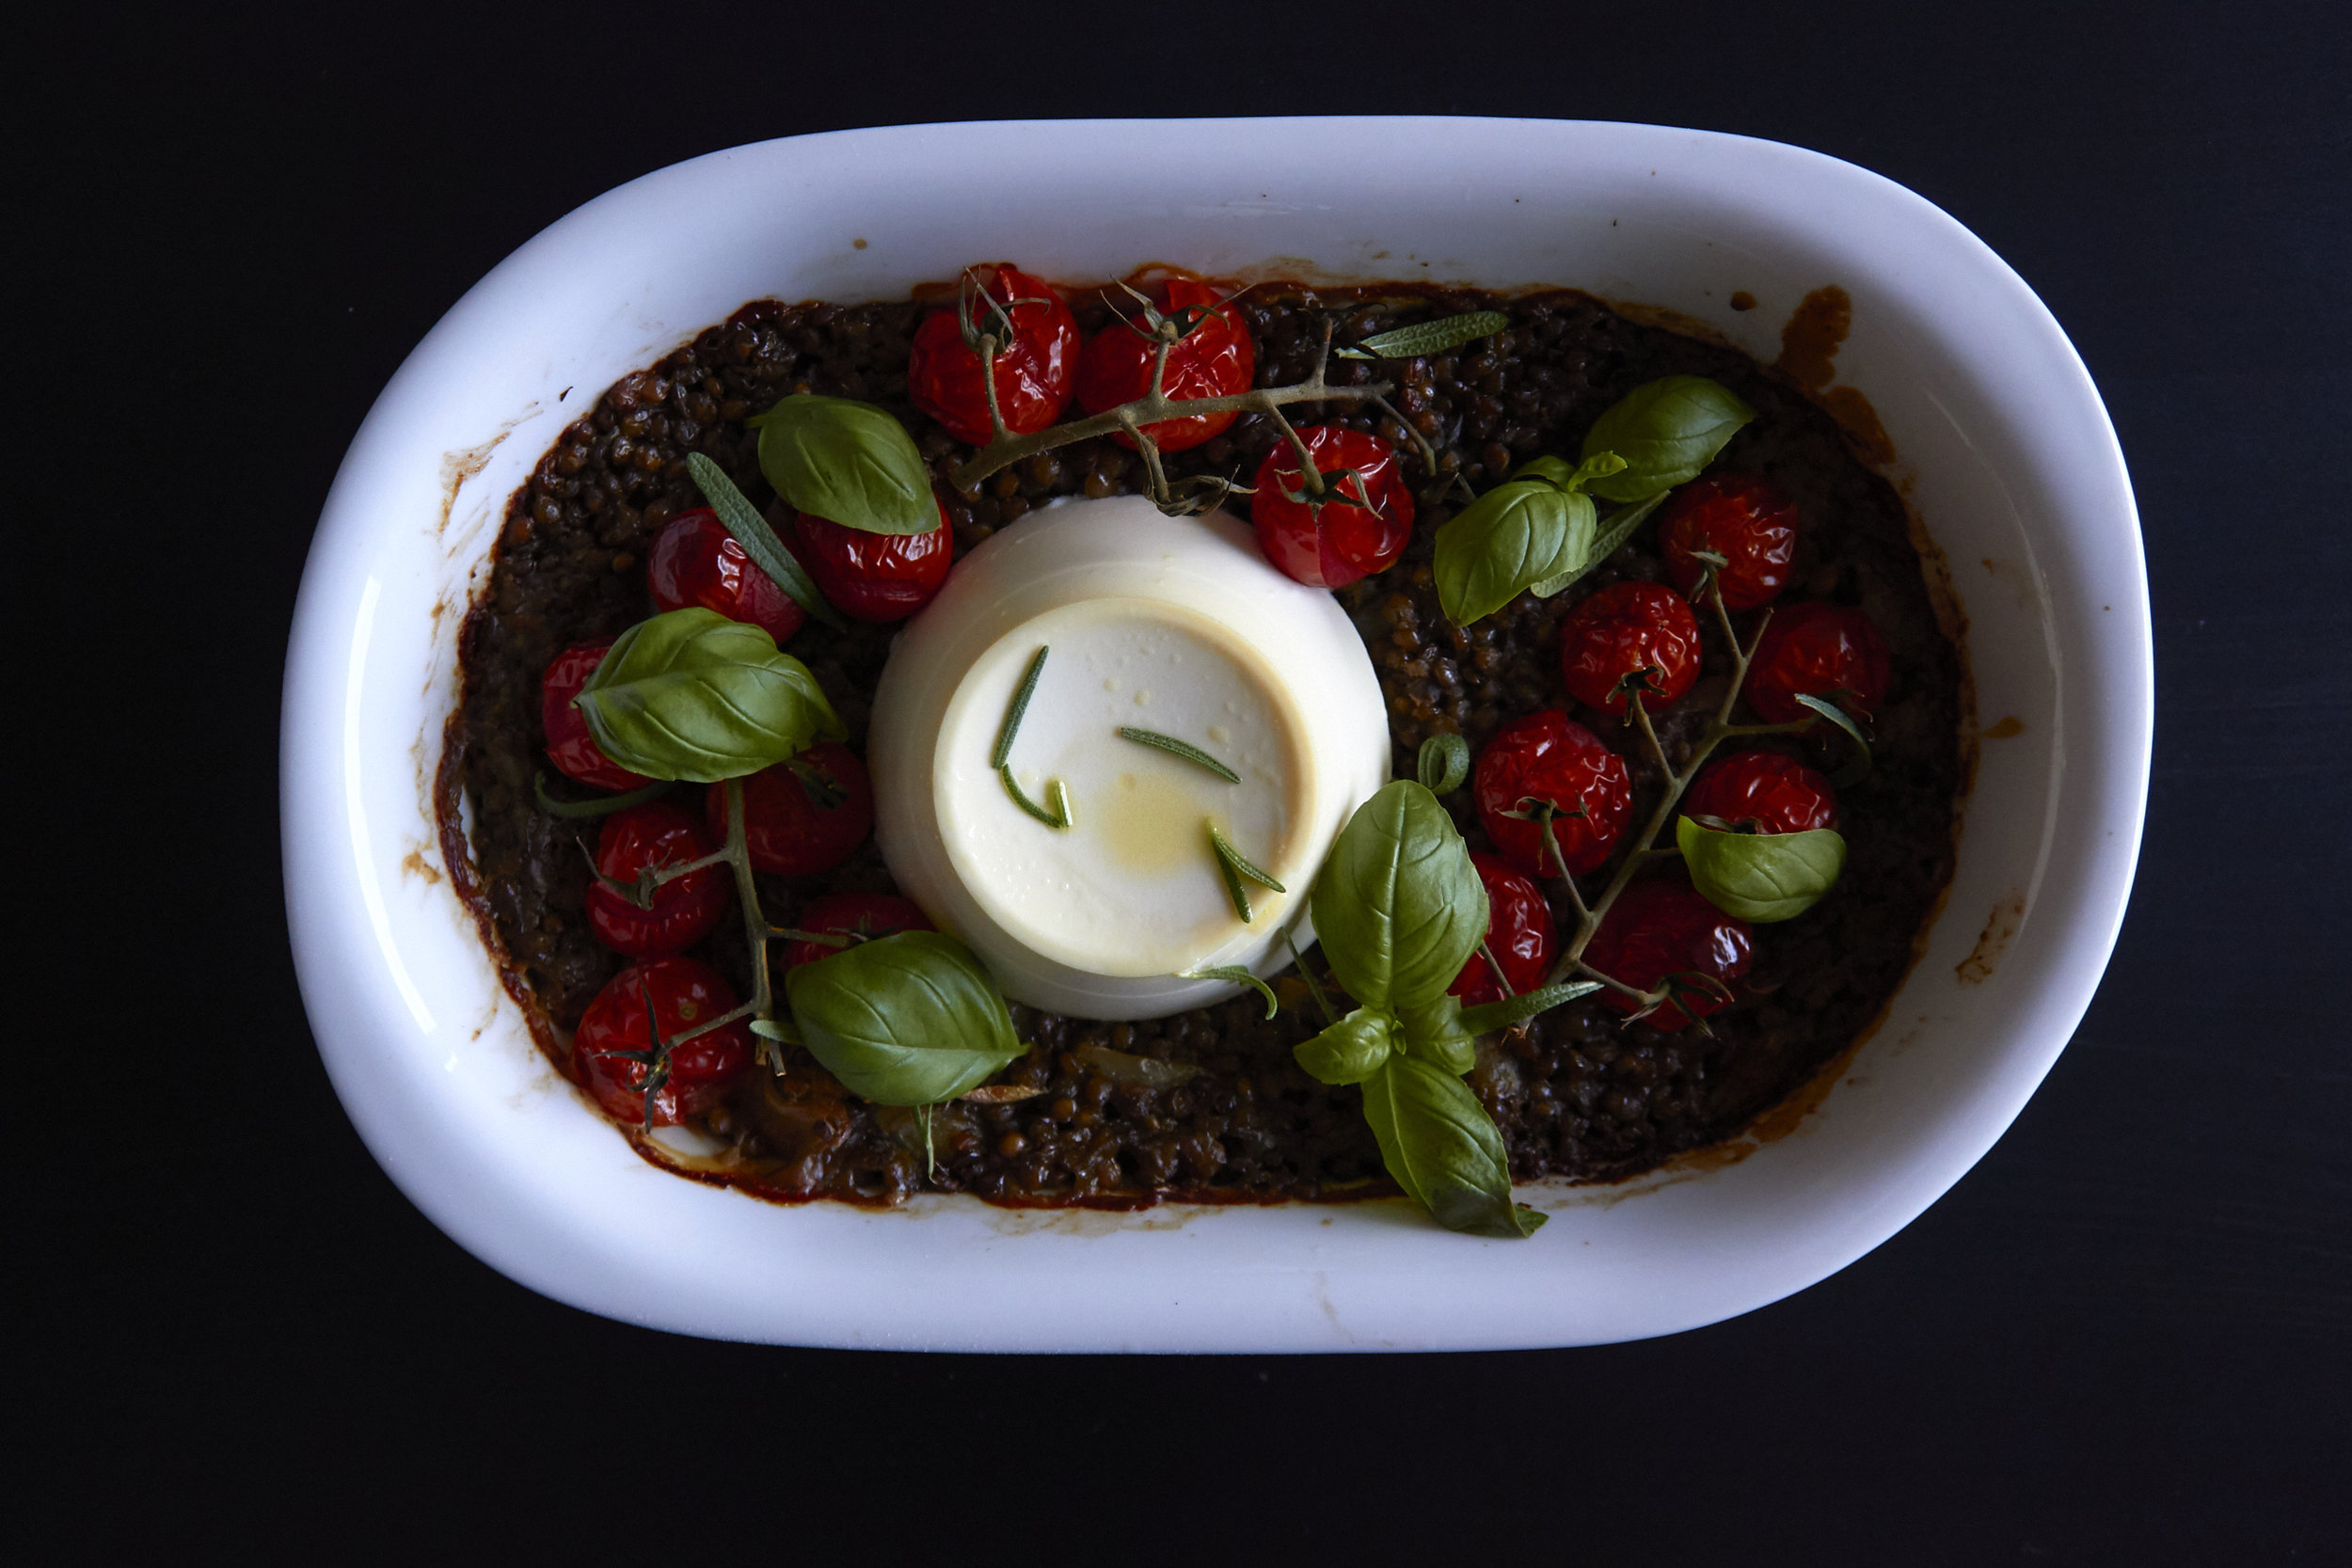 Baked Ricotta with Lentils, Herbs and Roasted Tomatoes | In Carina's Kitchen